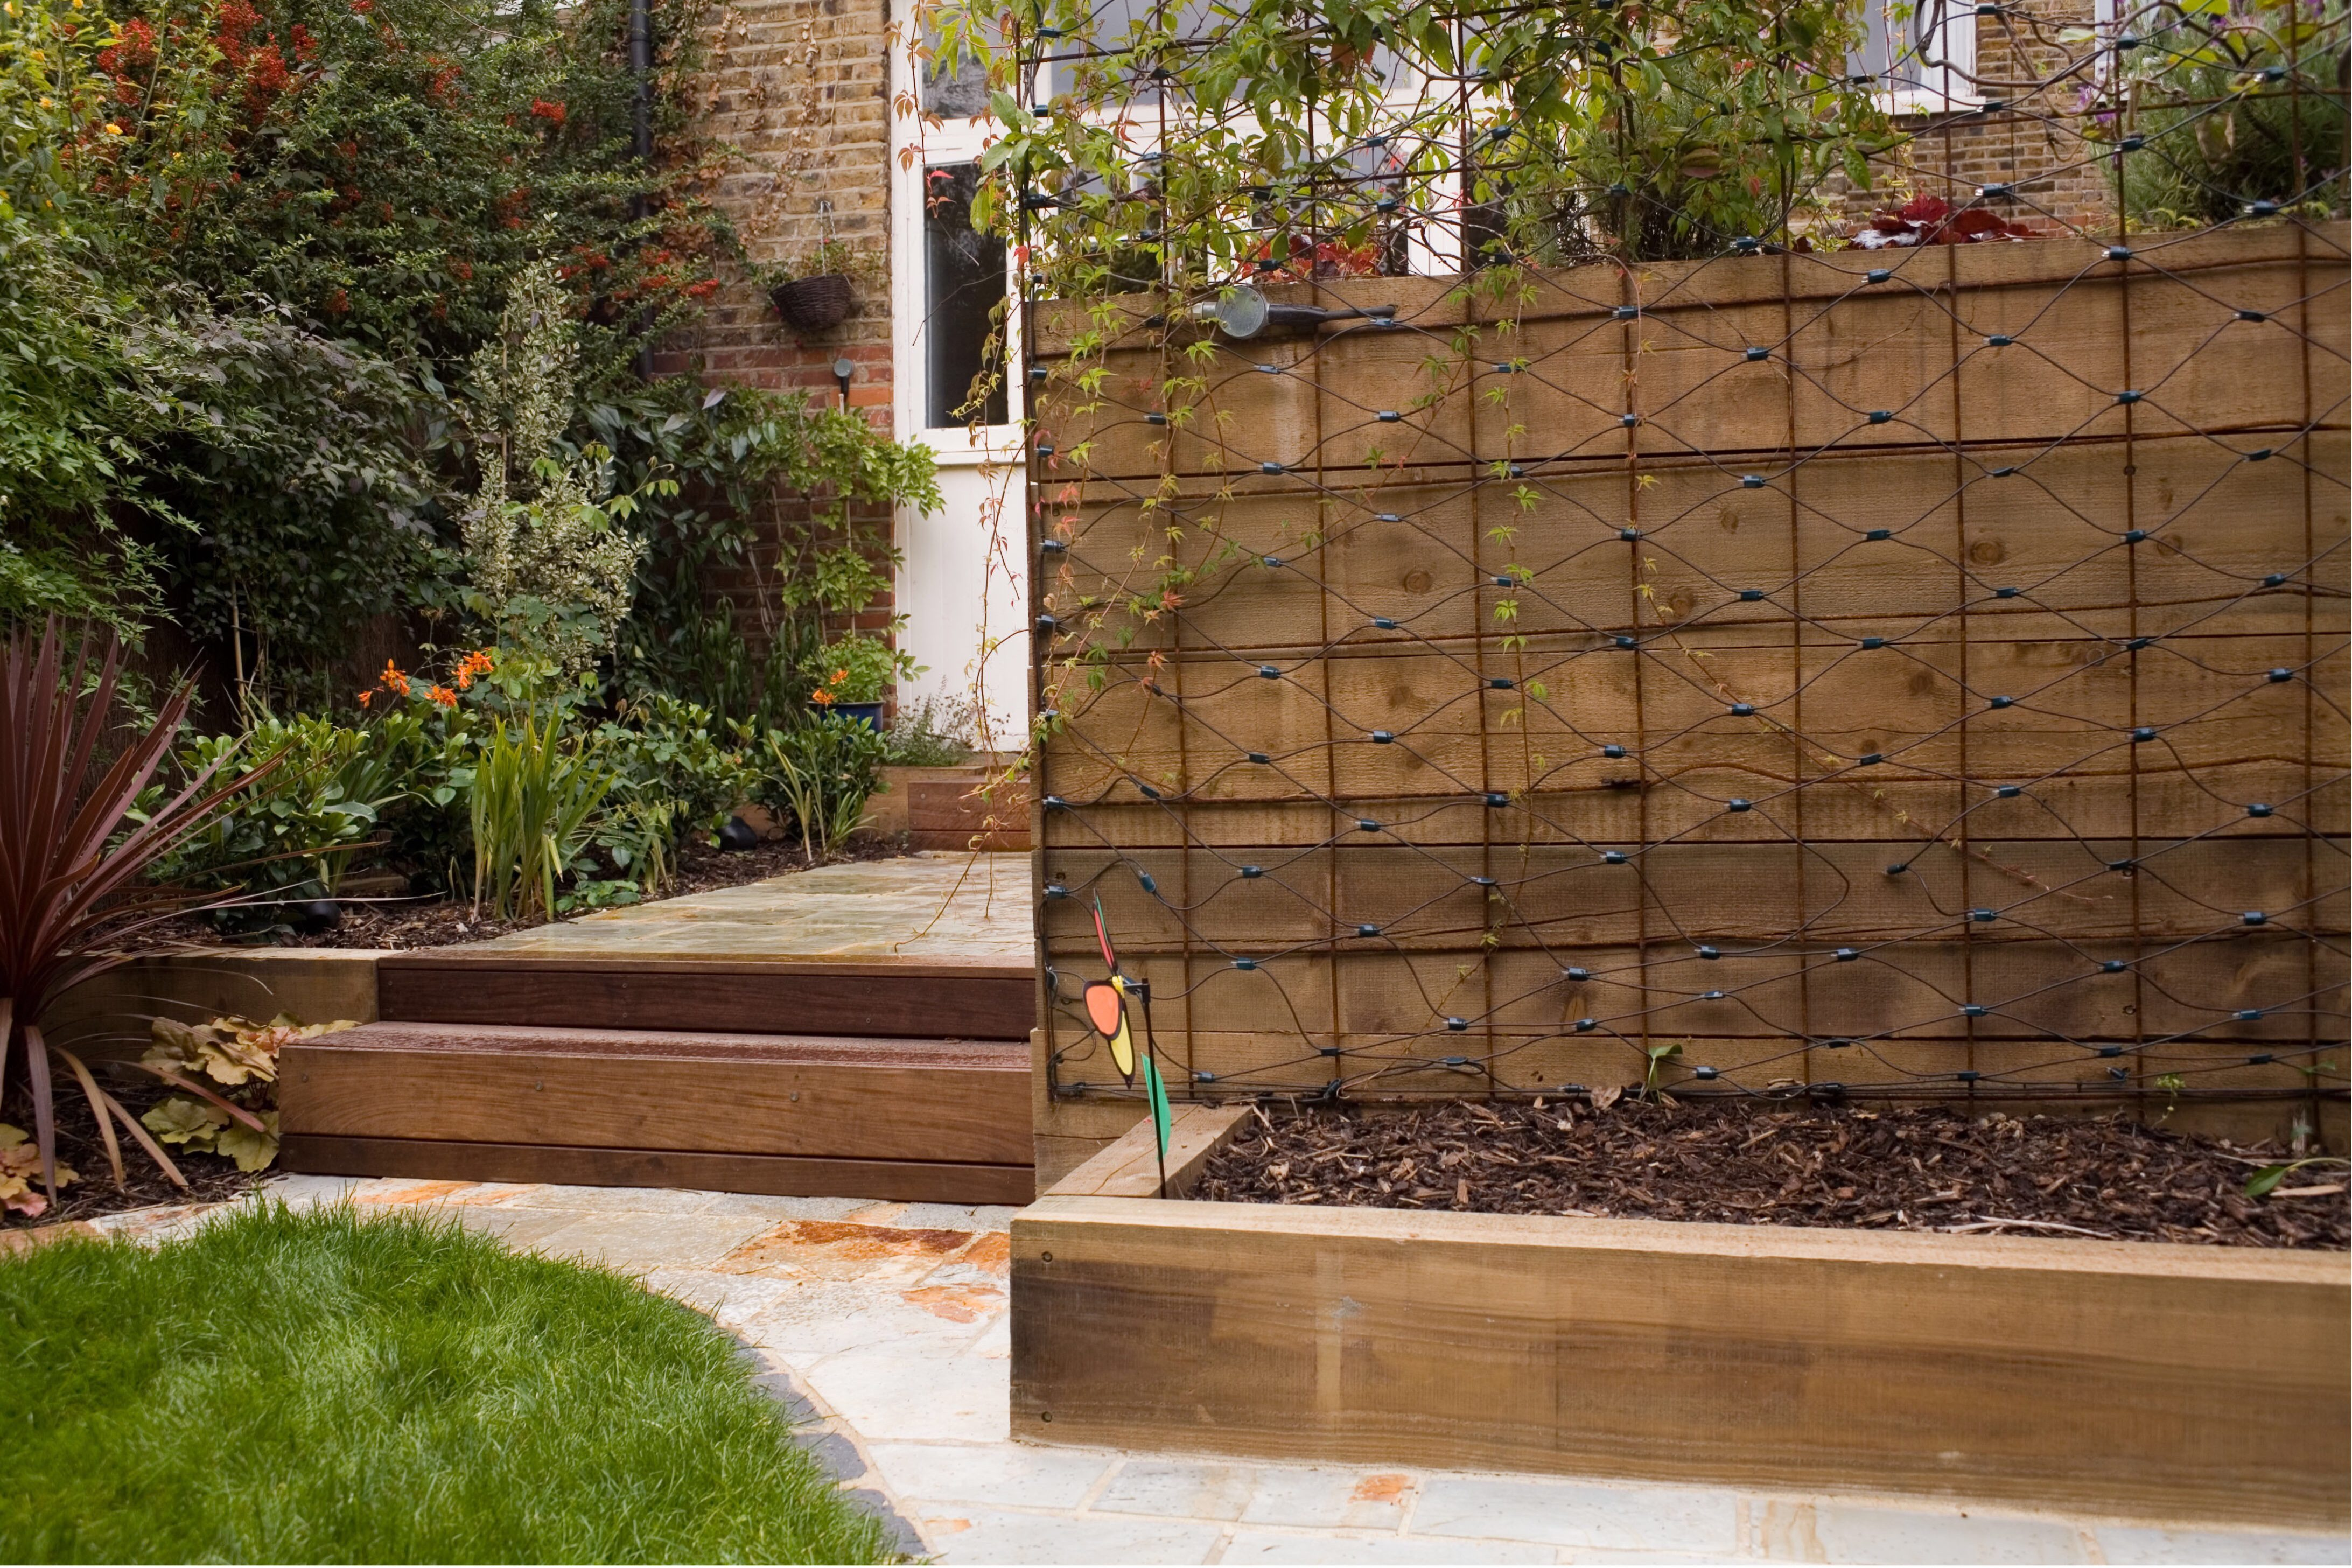 Railway sleepers can be used for levelling ground